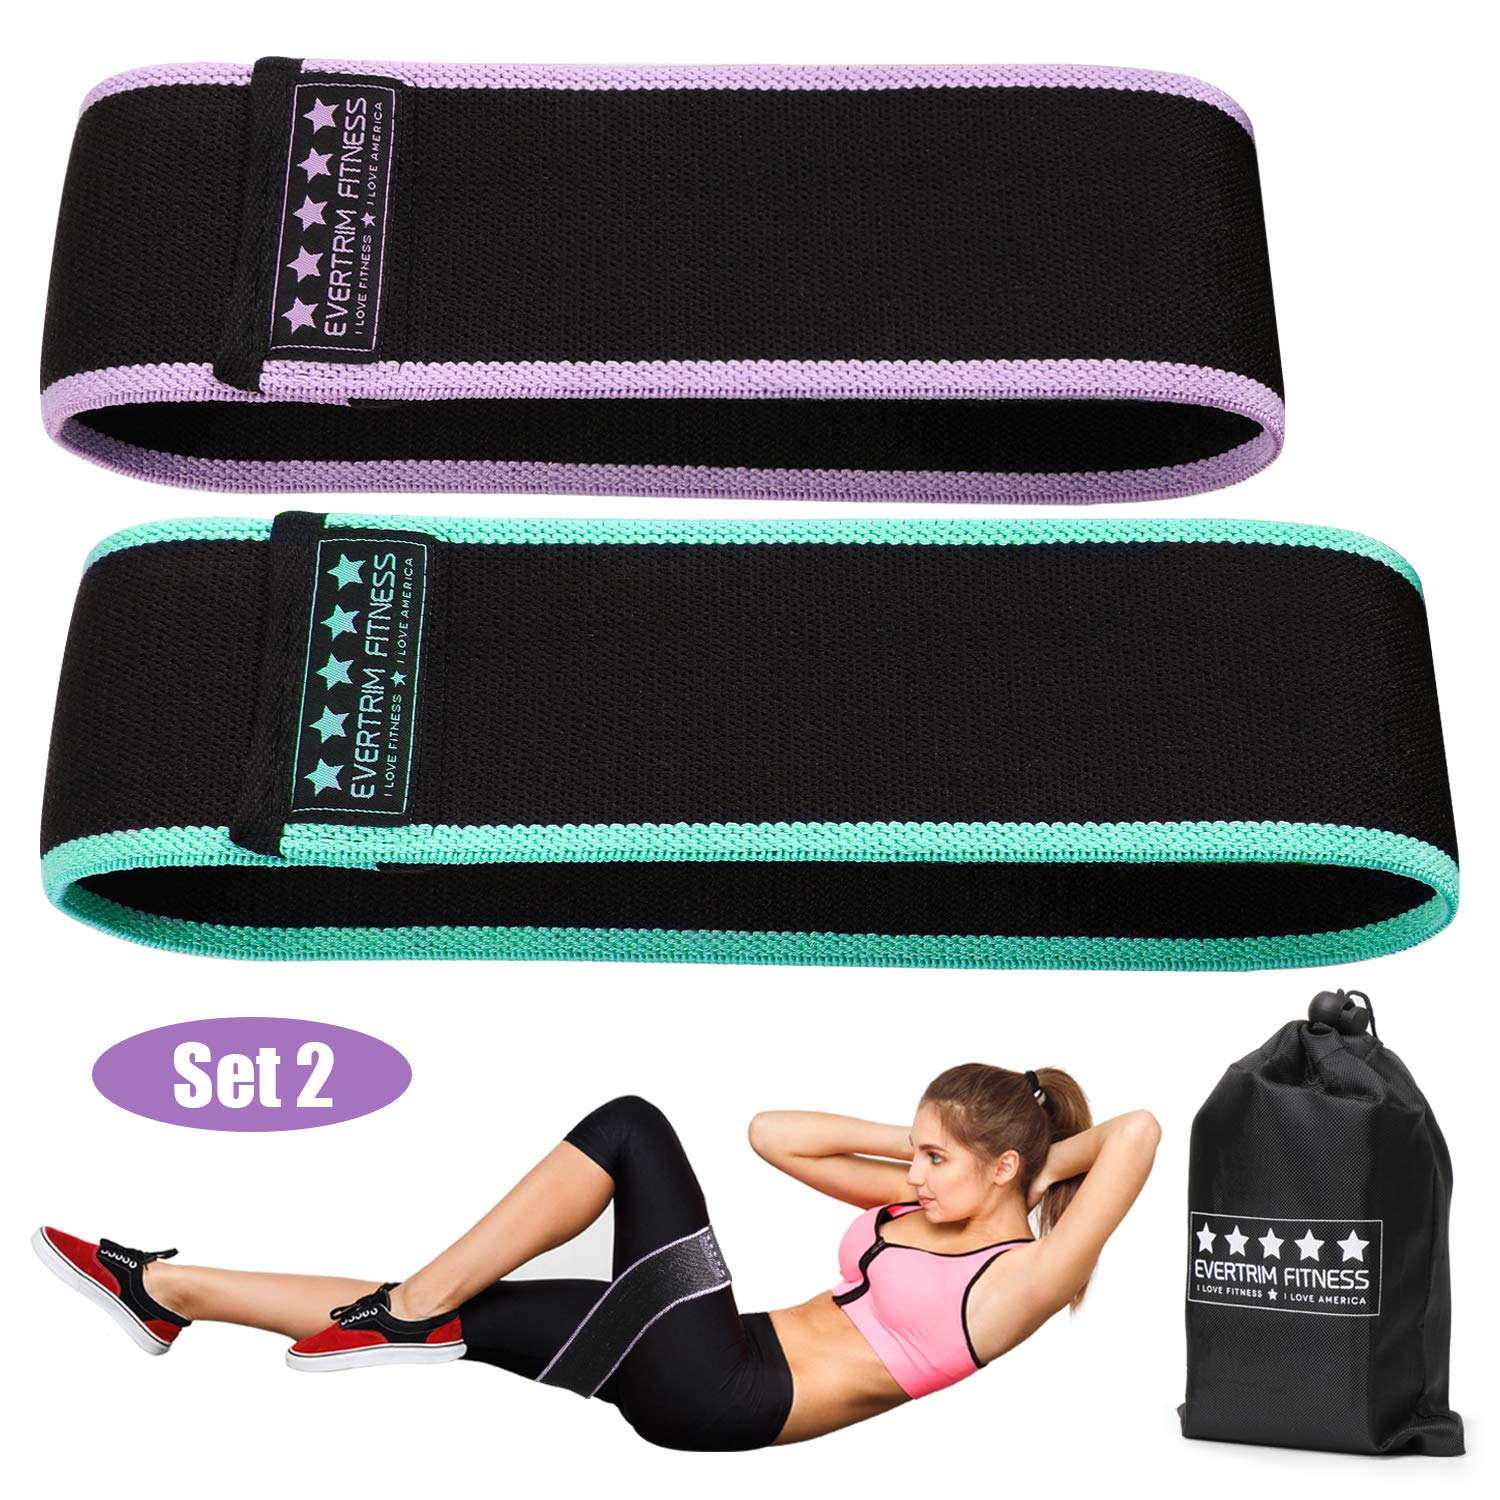 Resistance Bands for Legs and Butt, Exercise Band Booty Bands Hip Bands Wide Workout Bands Sports-Fitness Bands Stretch Resistance Loops Band Anti Slip Elastic (Life-time Warranty)